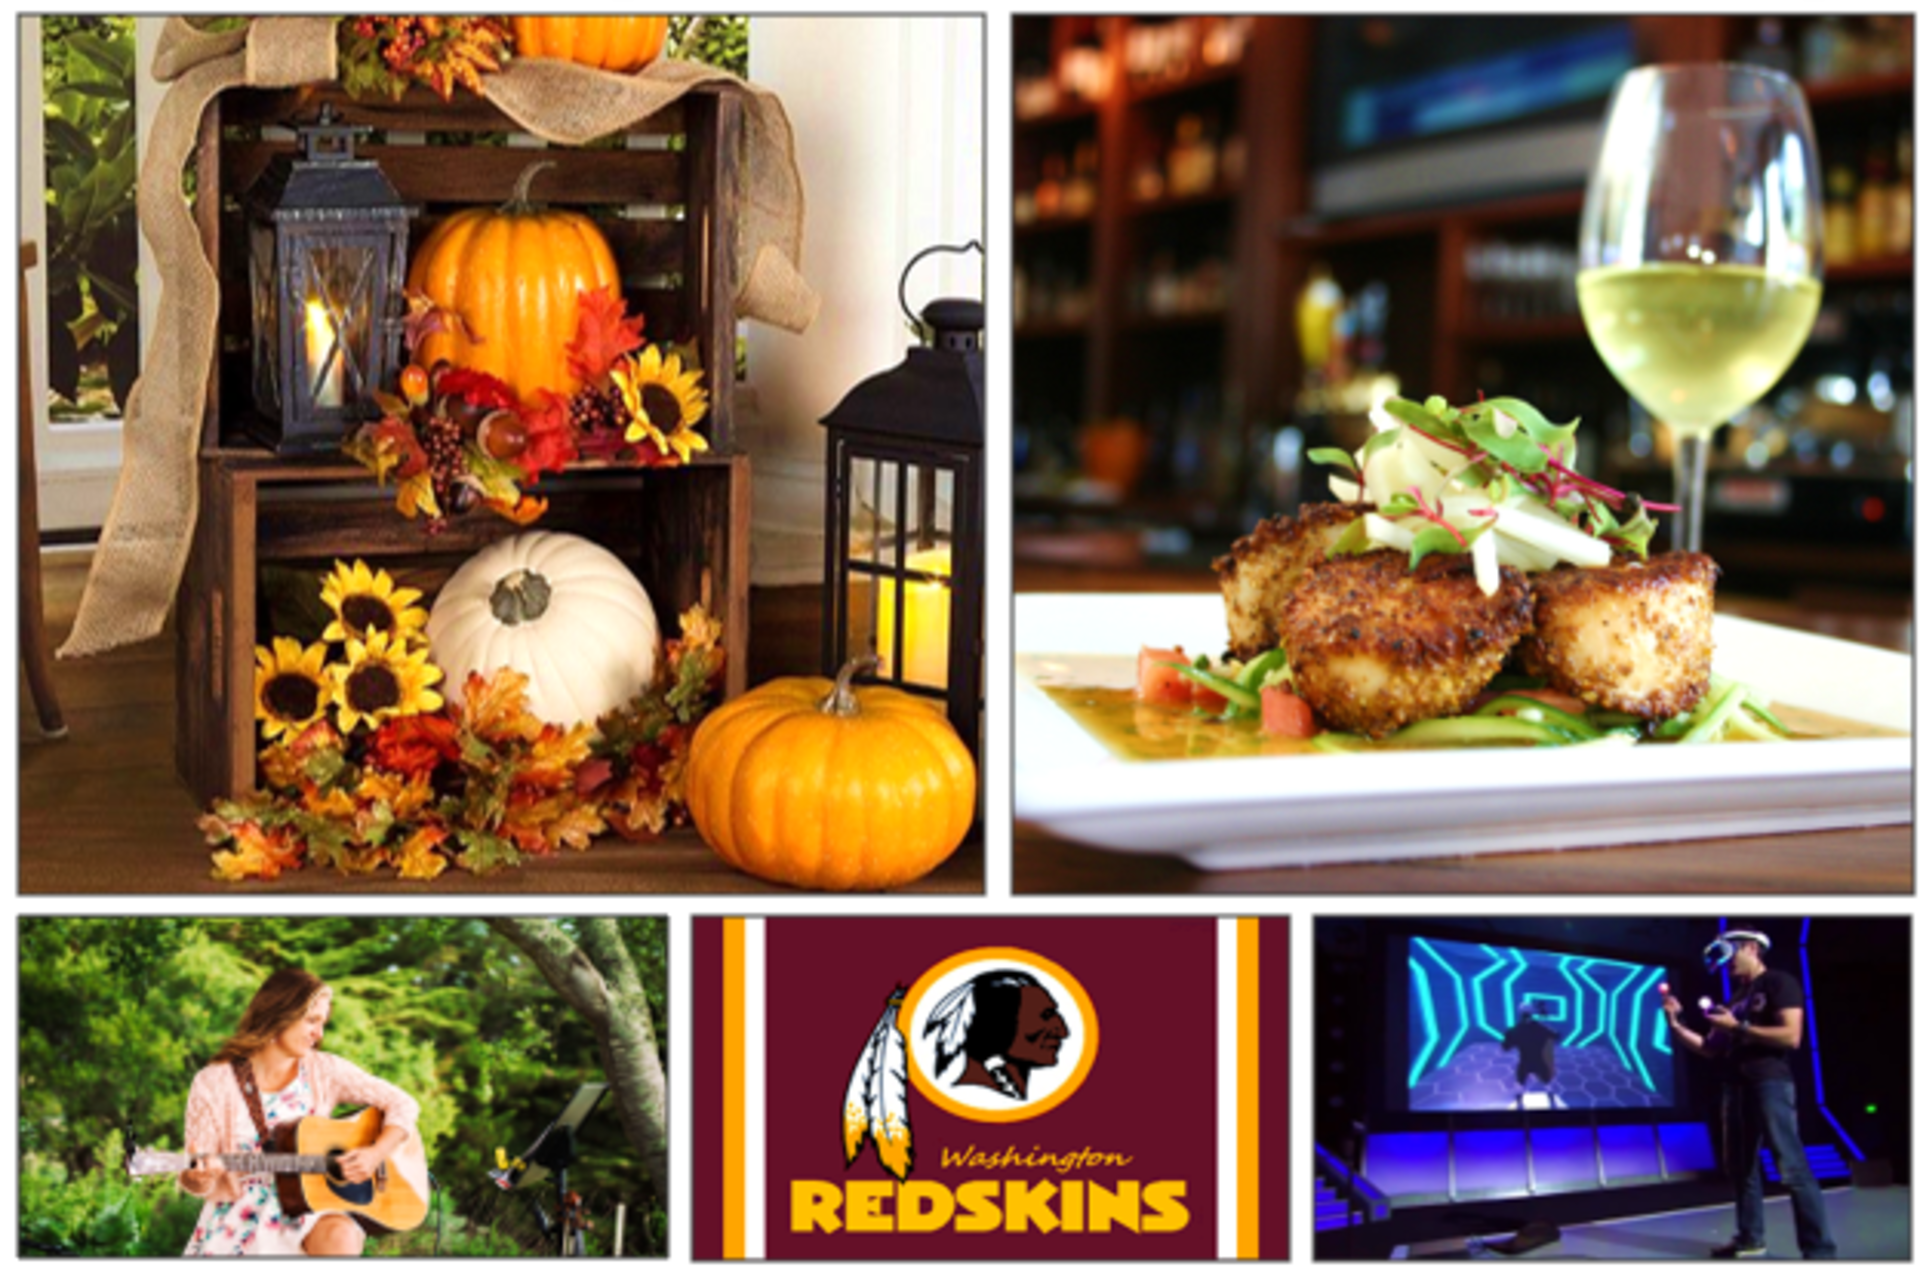 Schulien and Associates' Weekend Guide: (Labor Day Weekend)